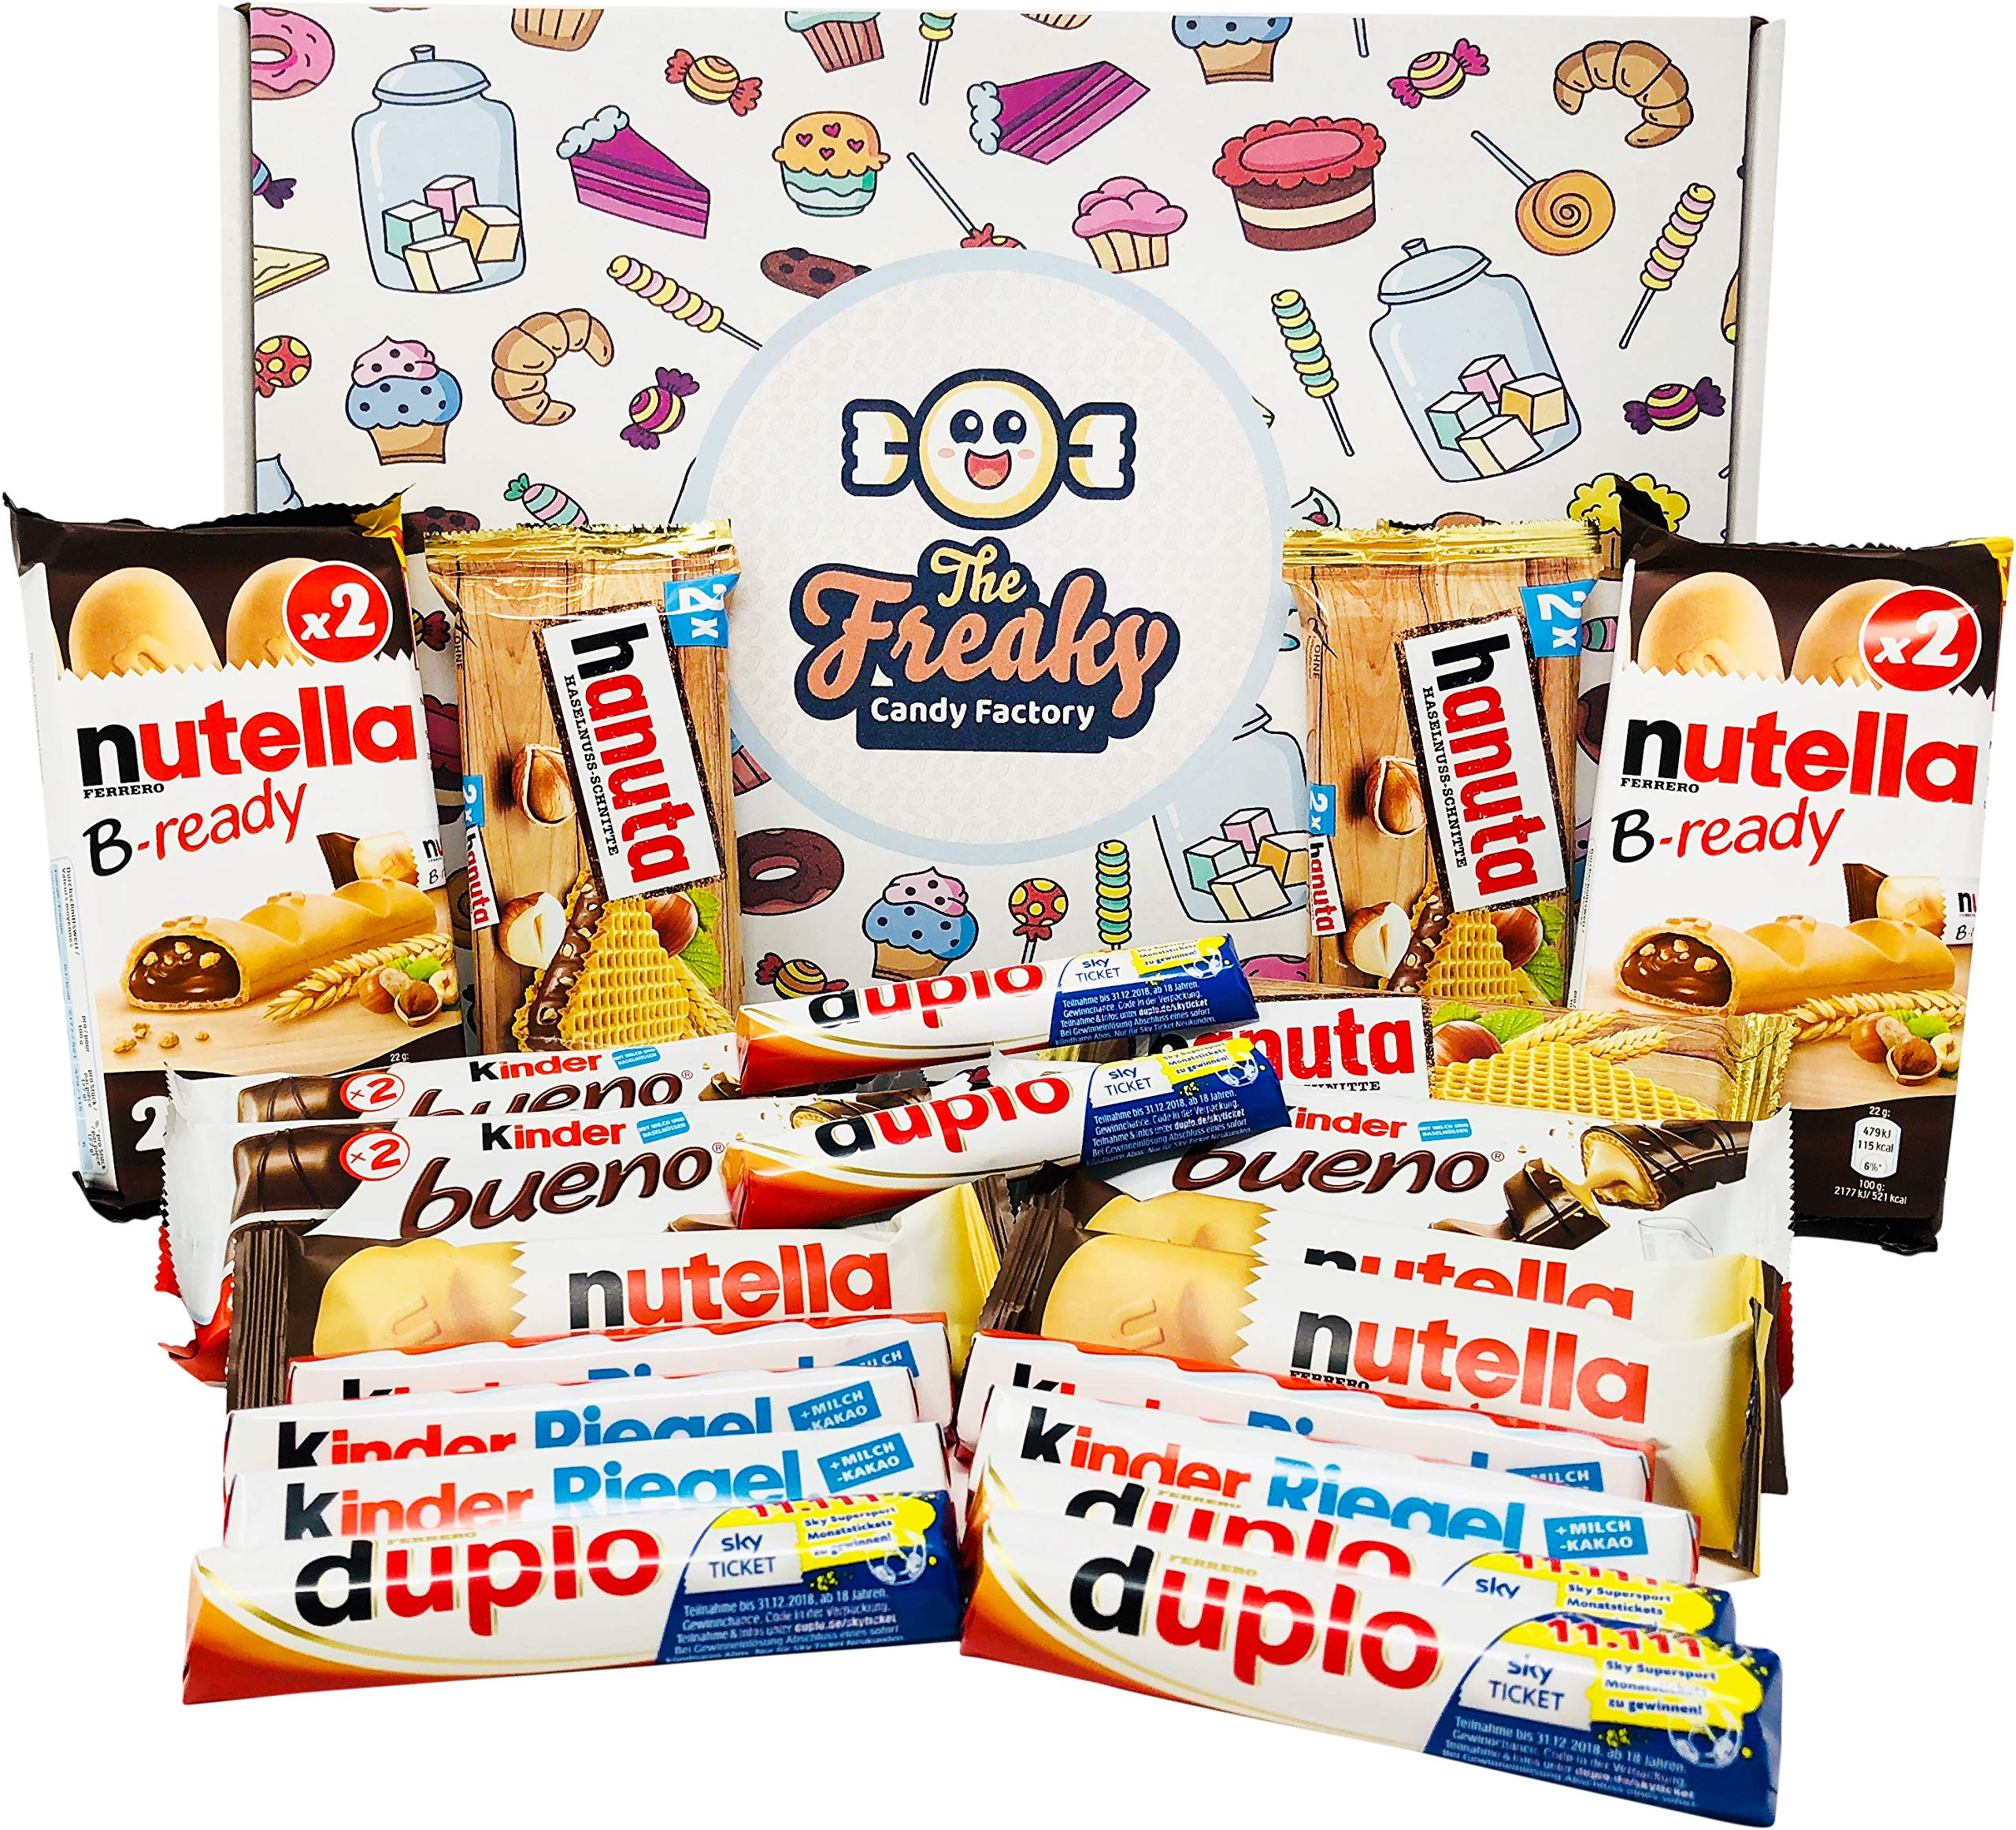 Ferrero Assorted Chocolates Gift Box (21-Pack) Classic German Candy | Bueno, Duplo, nutella b-ready, Kinder Riegel, and Hanuta | Personal Packs or Halloween Shareables by The Freaky Candy Factory